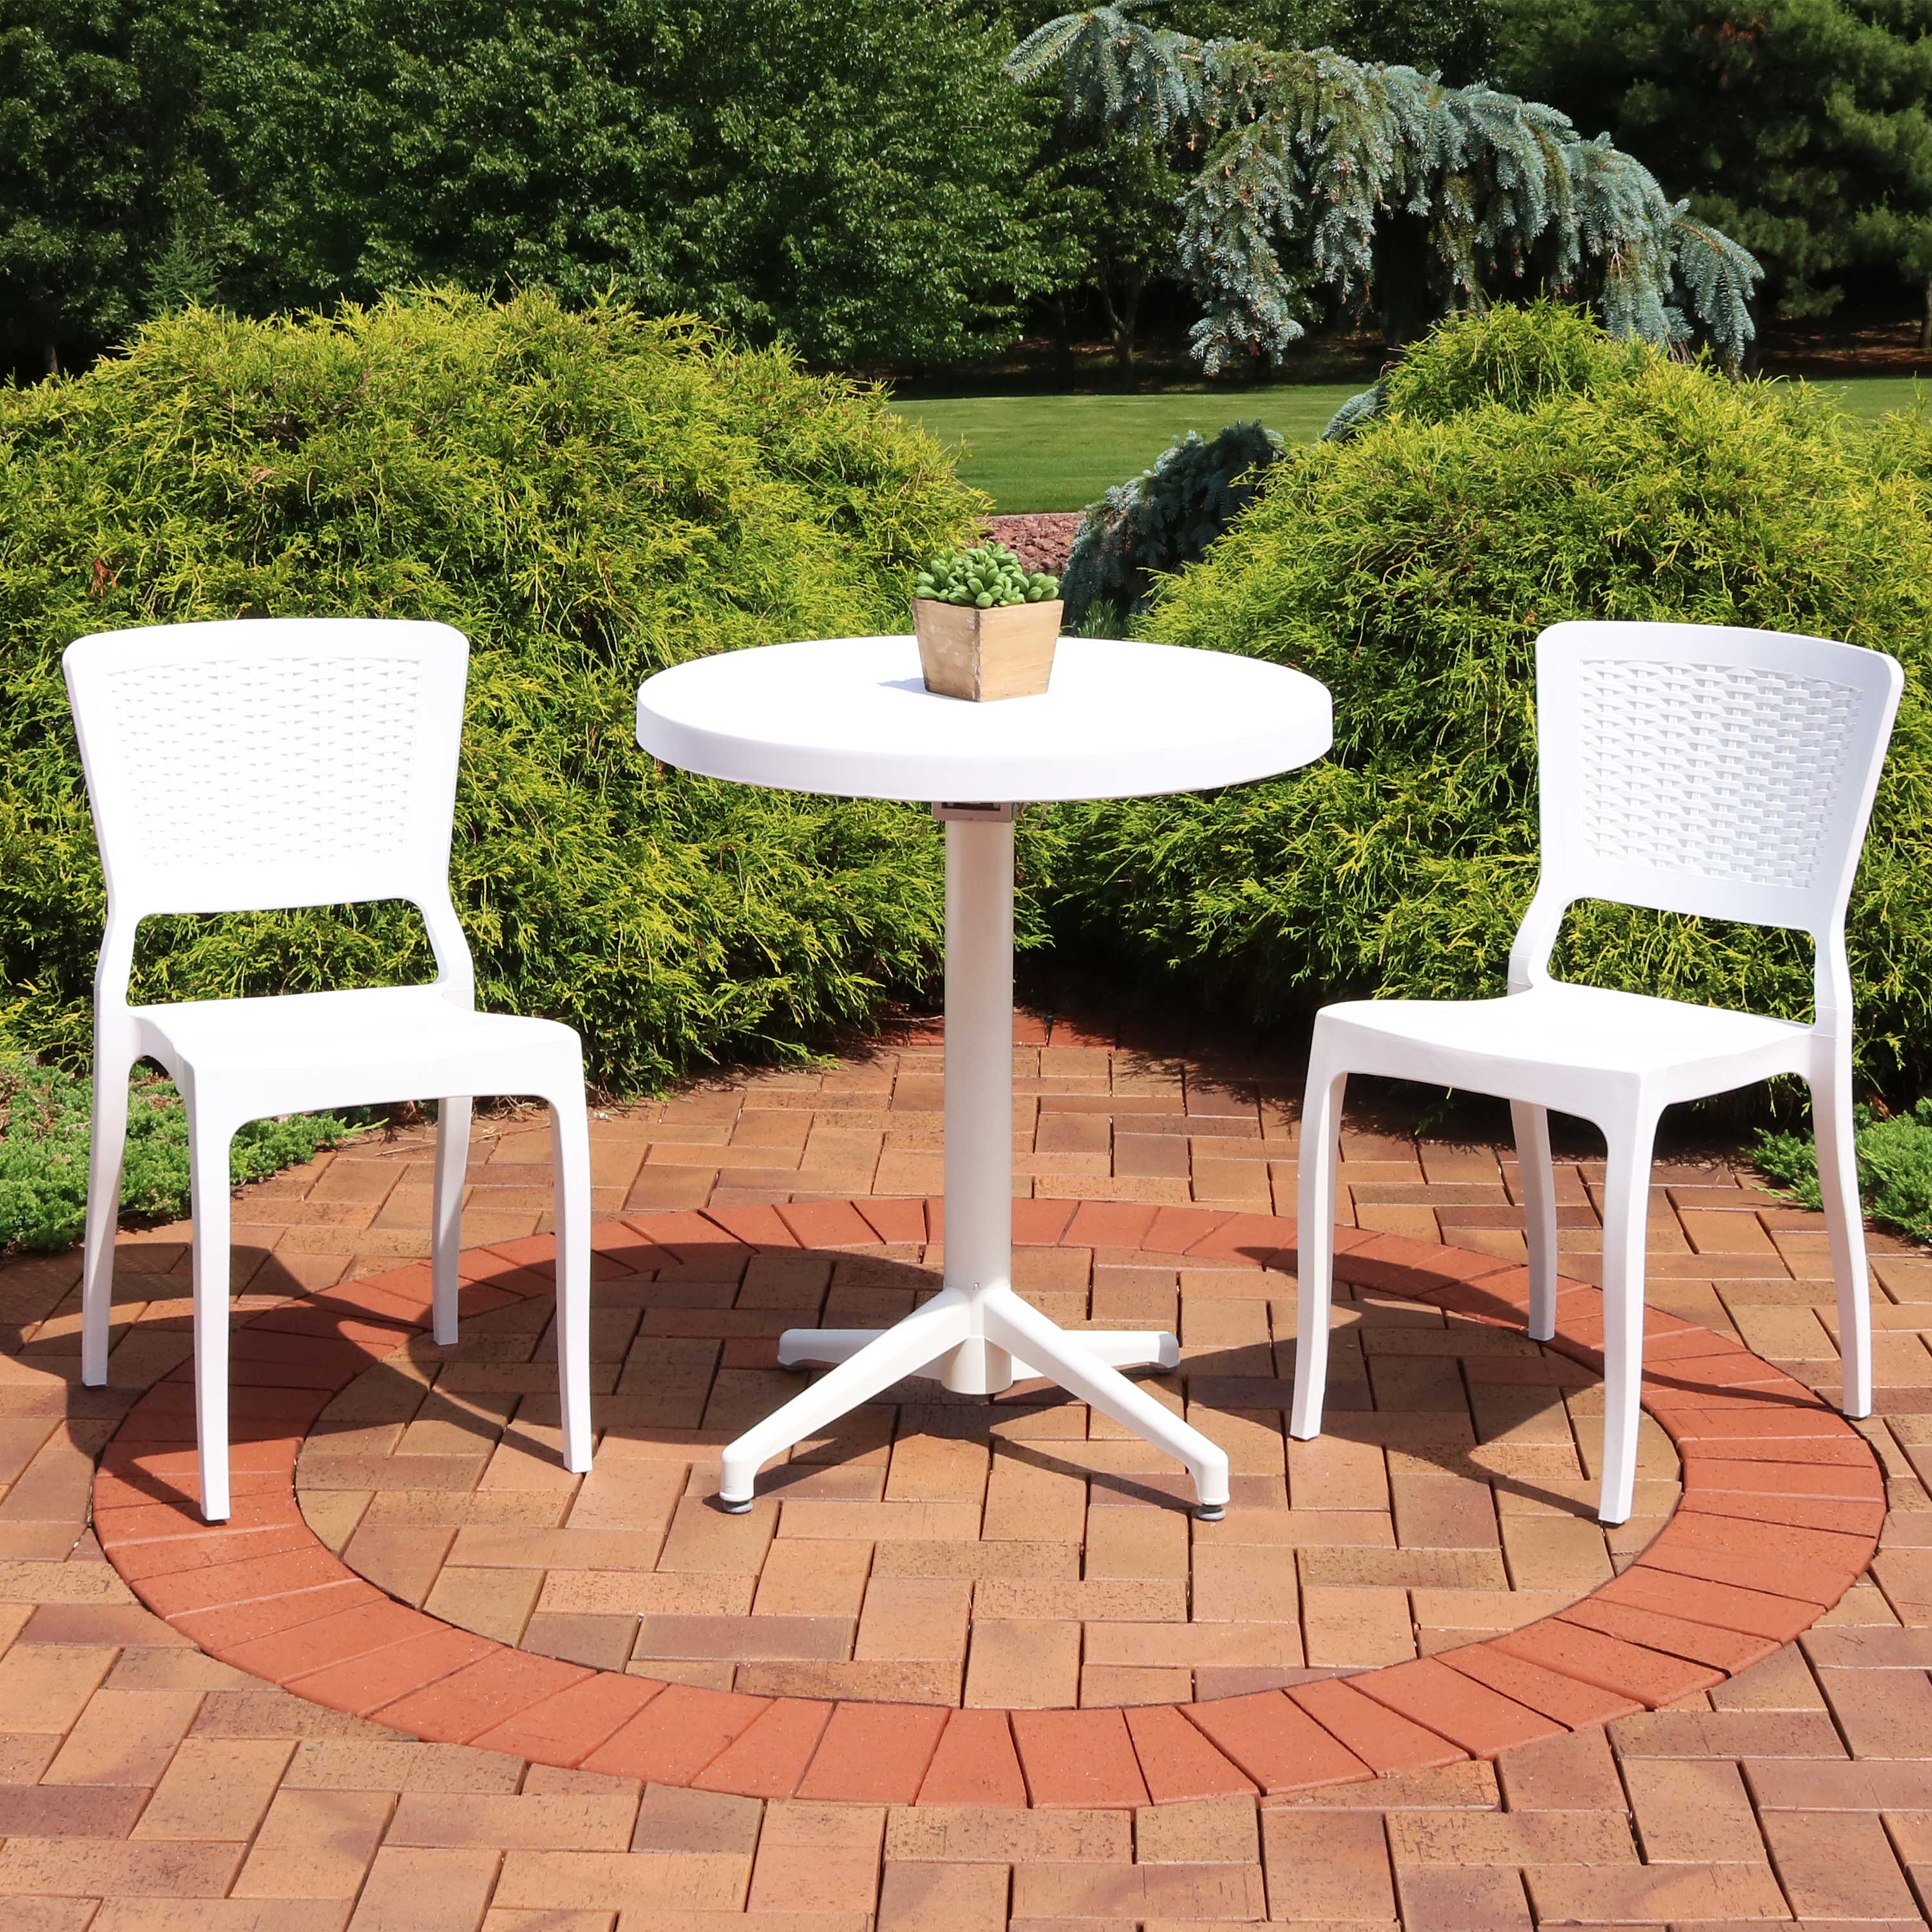 Picture of: Sunnydaze All Weather Hewitt Outdoor 3 Piece Patio Furniture Dining Set Includes Round Table With Folding Top And 2 Chairs Commercial Grade Indoor Outdoor Use White Walmart Com Walmart Com